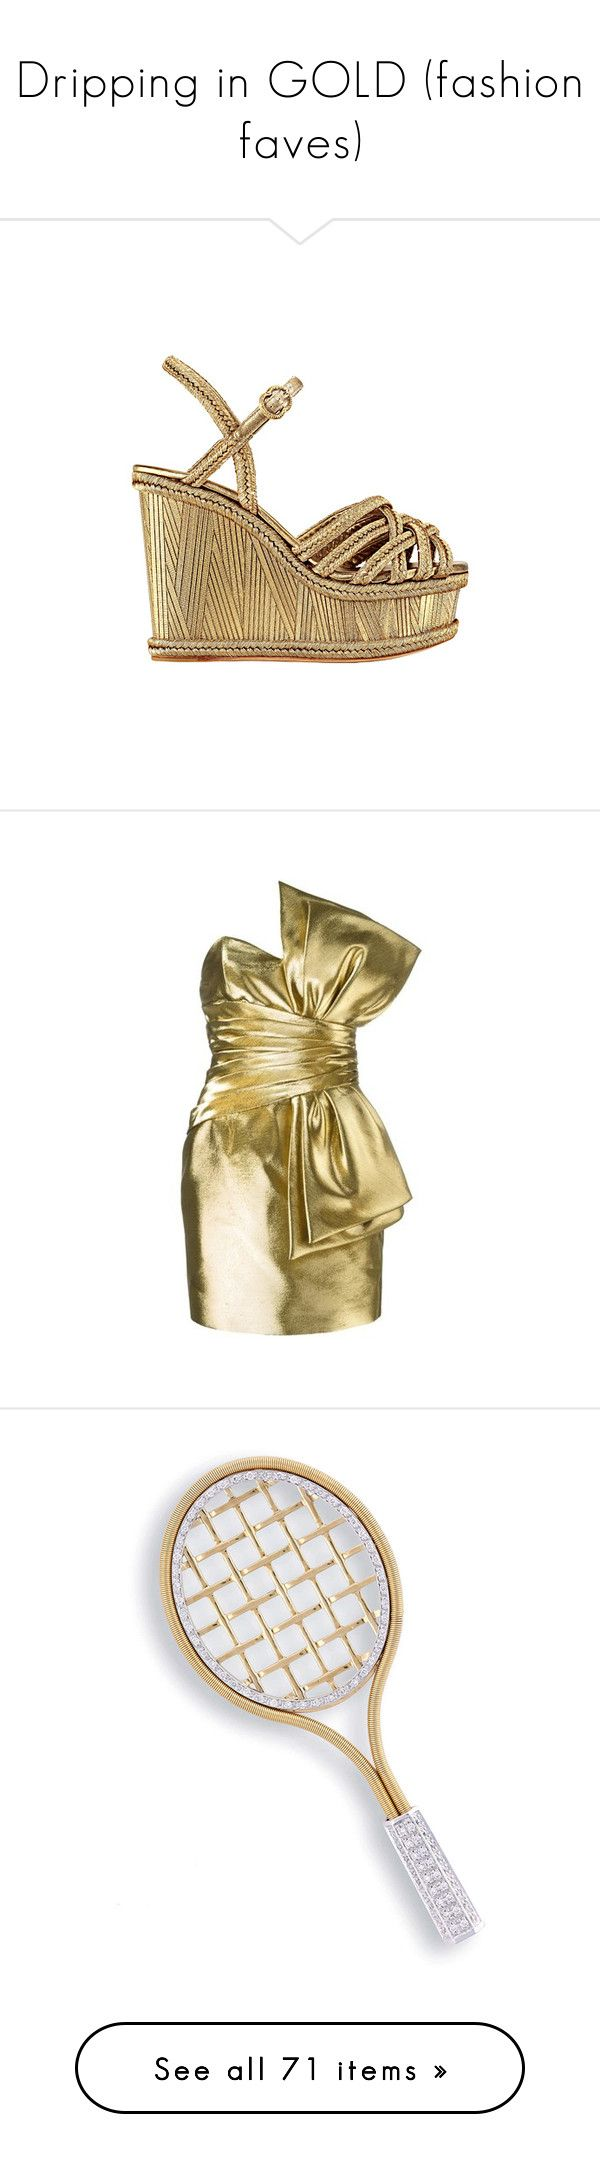 """""""Dripping in GOLD (fashion faves)"""" by liddy-white ❤ liked on Polyvore featuring shoes, wedges, chanel, heels, scarpe, chanel shoes, wedge sole shoes, chanel footwear, wedges shoes and dresses"""